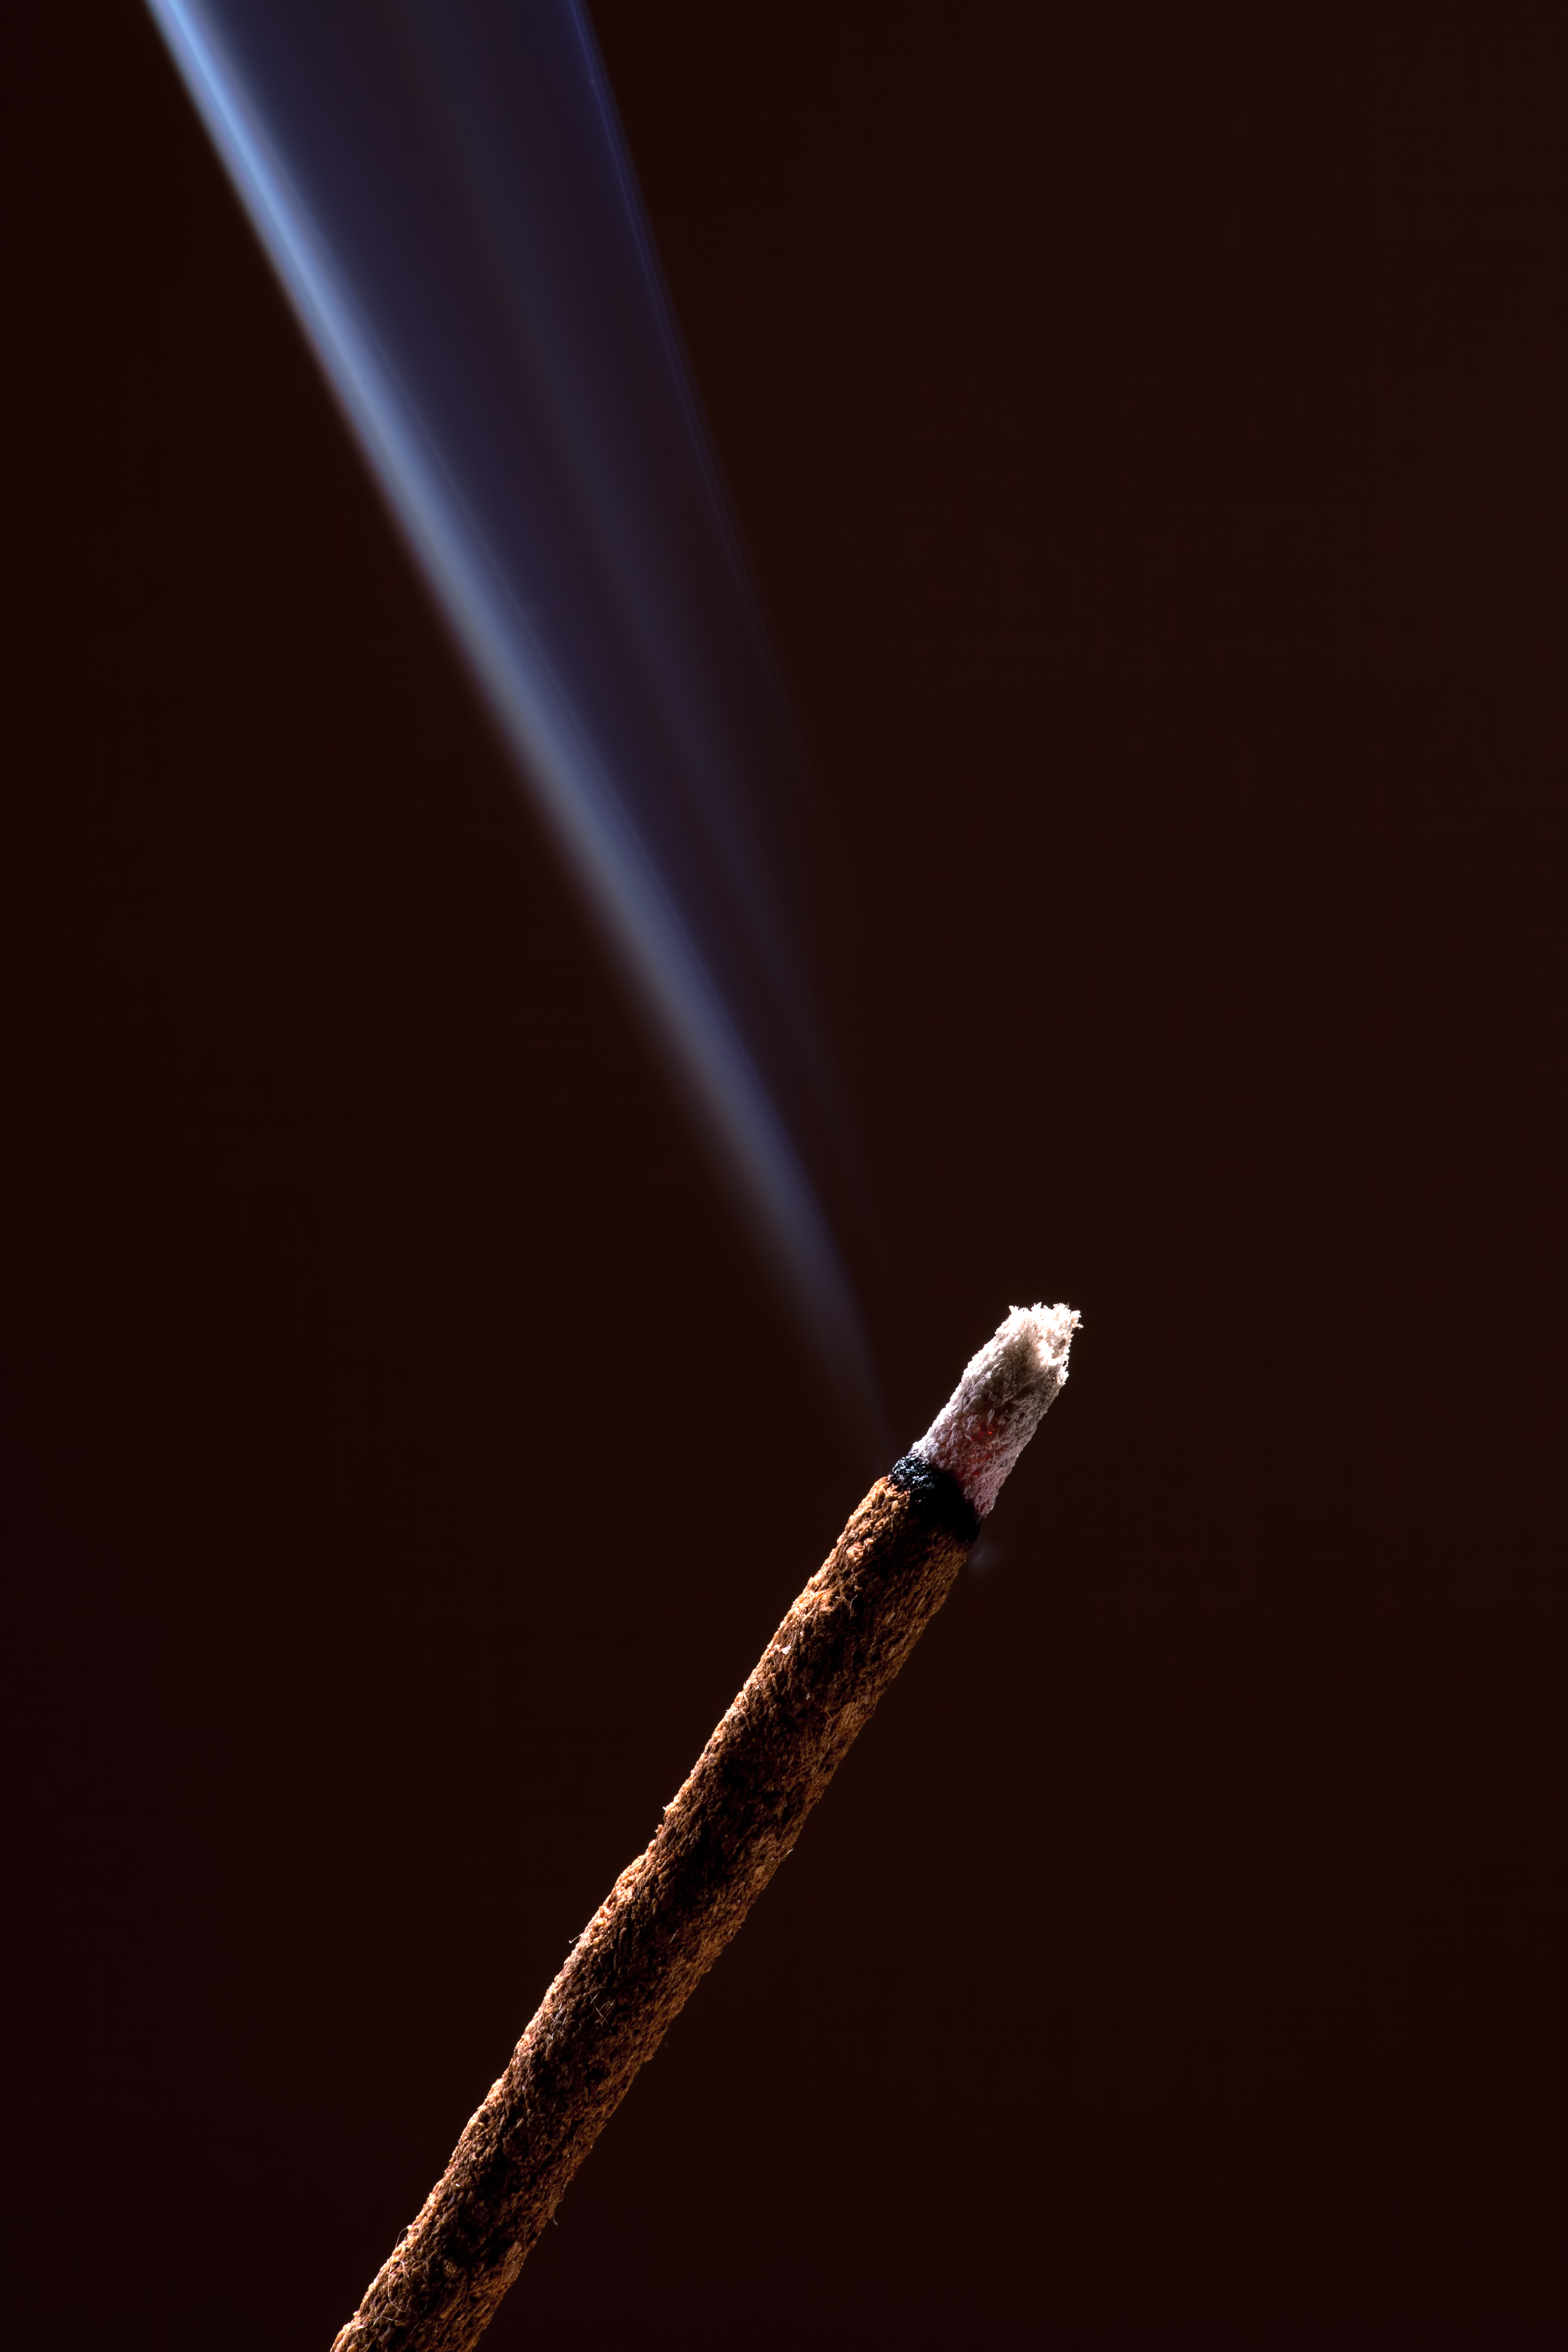 Smoke from Incense Stick, Aromatherapy, Nobody, Light, Macro, HQ Photo